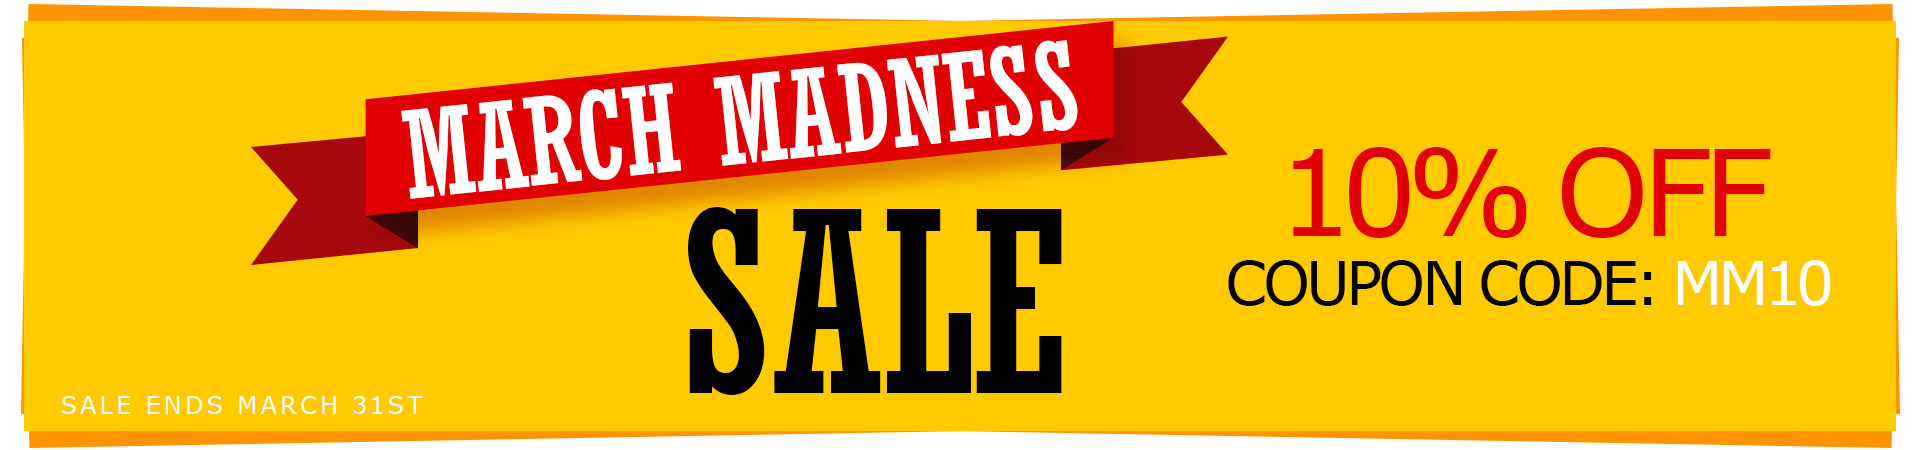 march madness linen sale